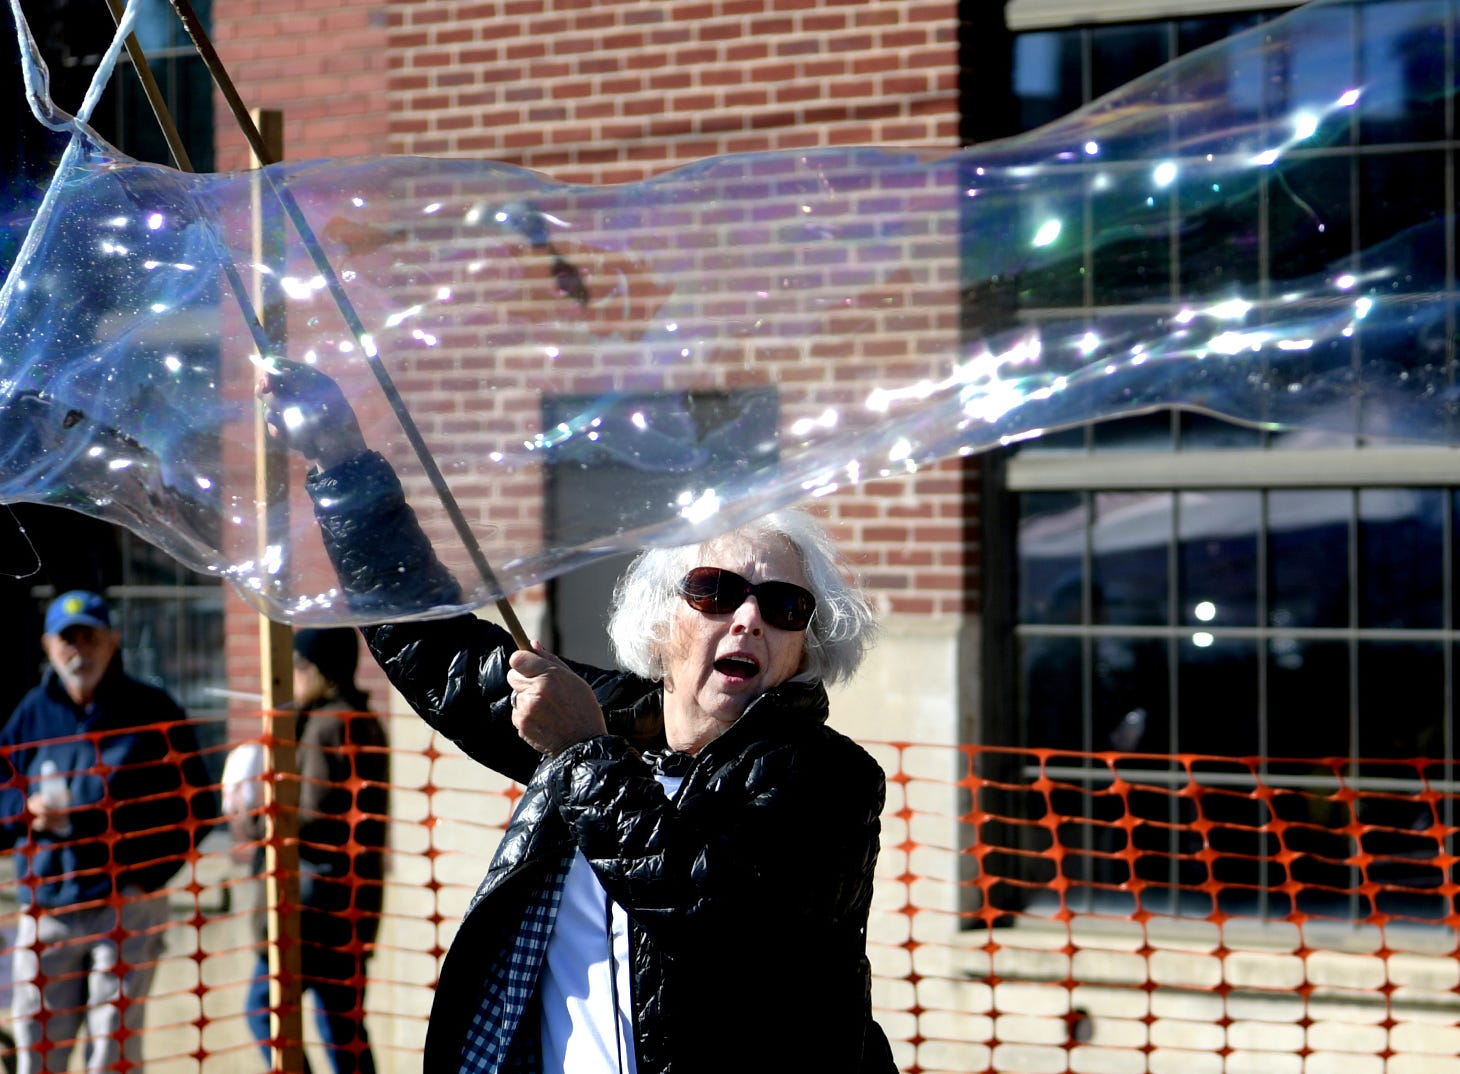 Pat Sweetman of York City makes bubbles outside the Agricultural & Industrial Museum during the History On The Half Shell fundraising event sponsored by the York County History Center Sunday, October 21, 2018. The event offered oysters, other food choices, drink, music, children's activities and historical presentations. York's Bubble Lady, Debbie Flaum, provided the bubbles. Bill Kalina photo